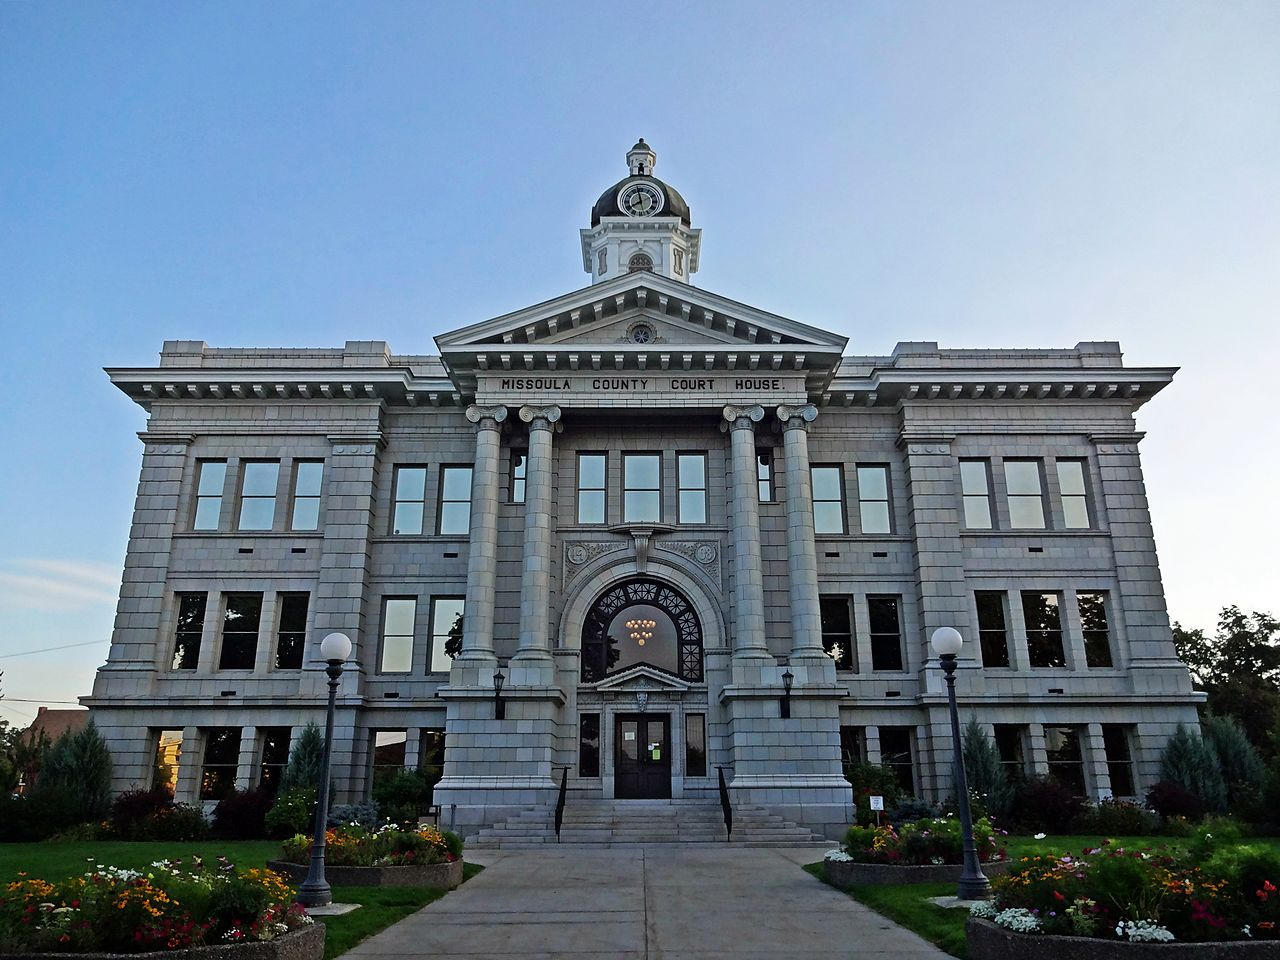 1280px-Missoula_County_Courthouse_in_Morning